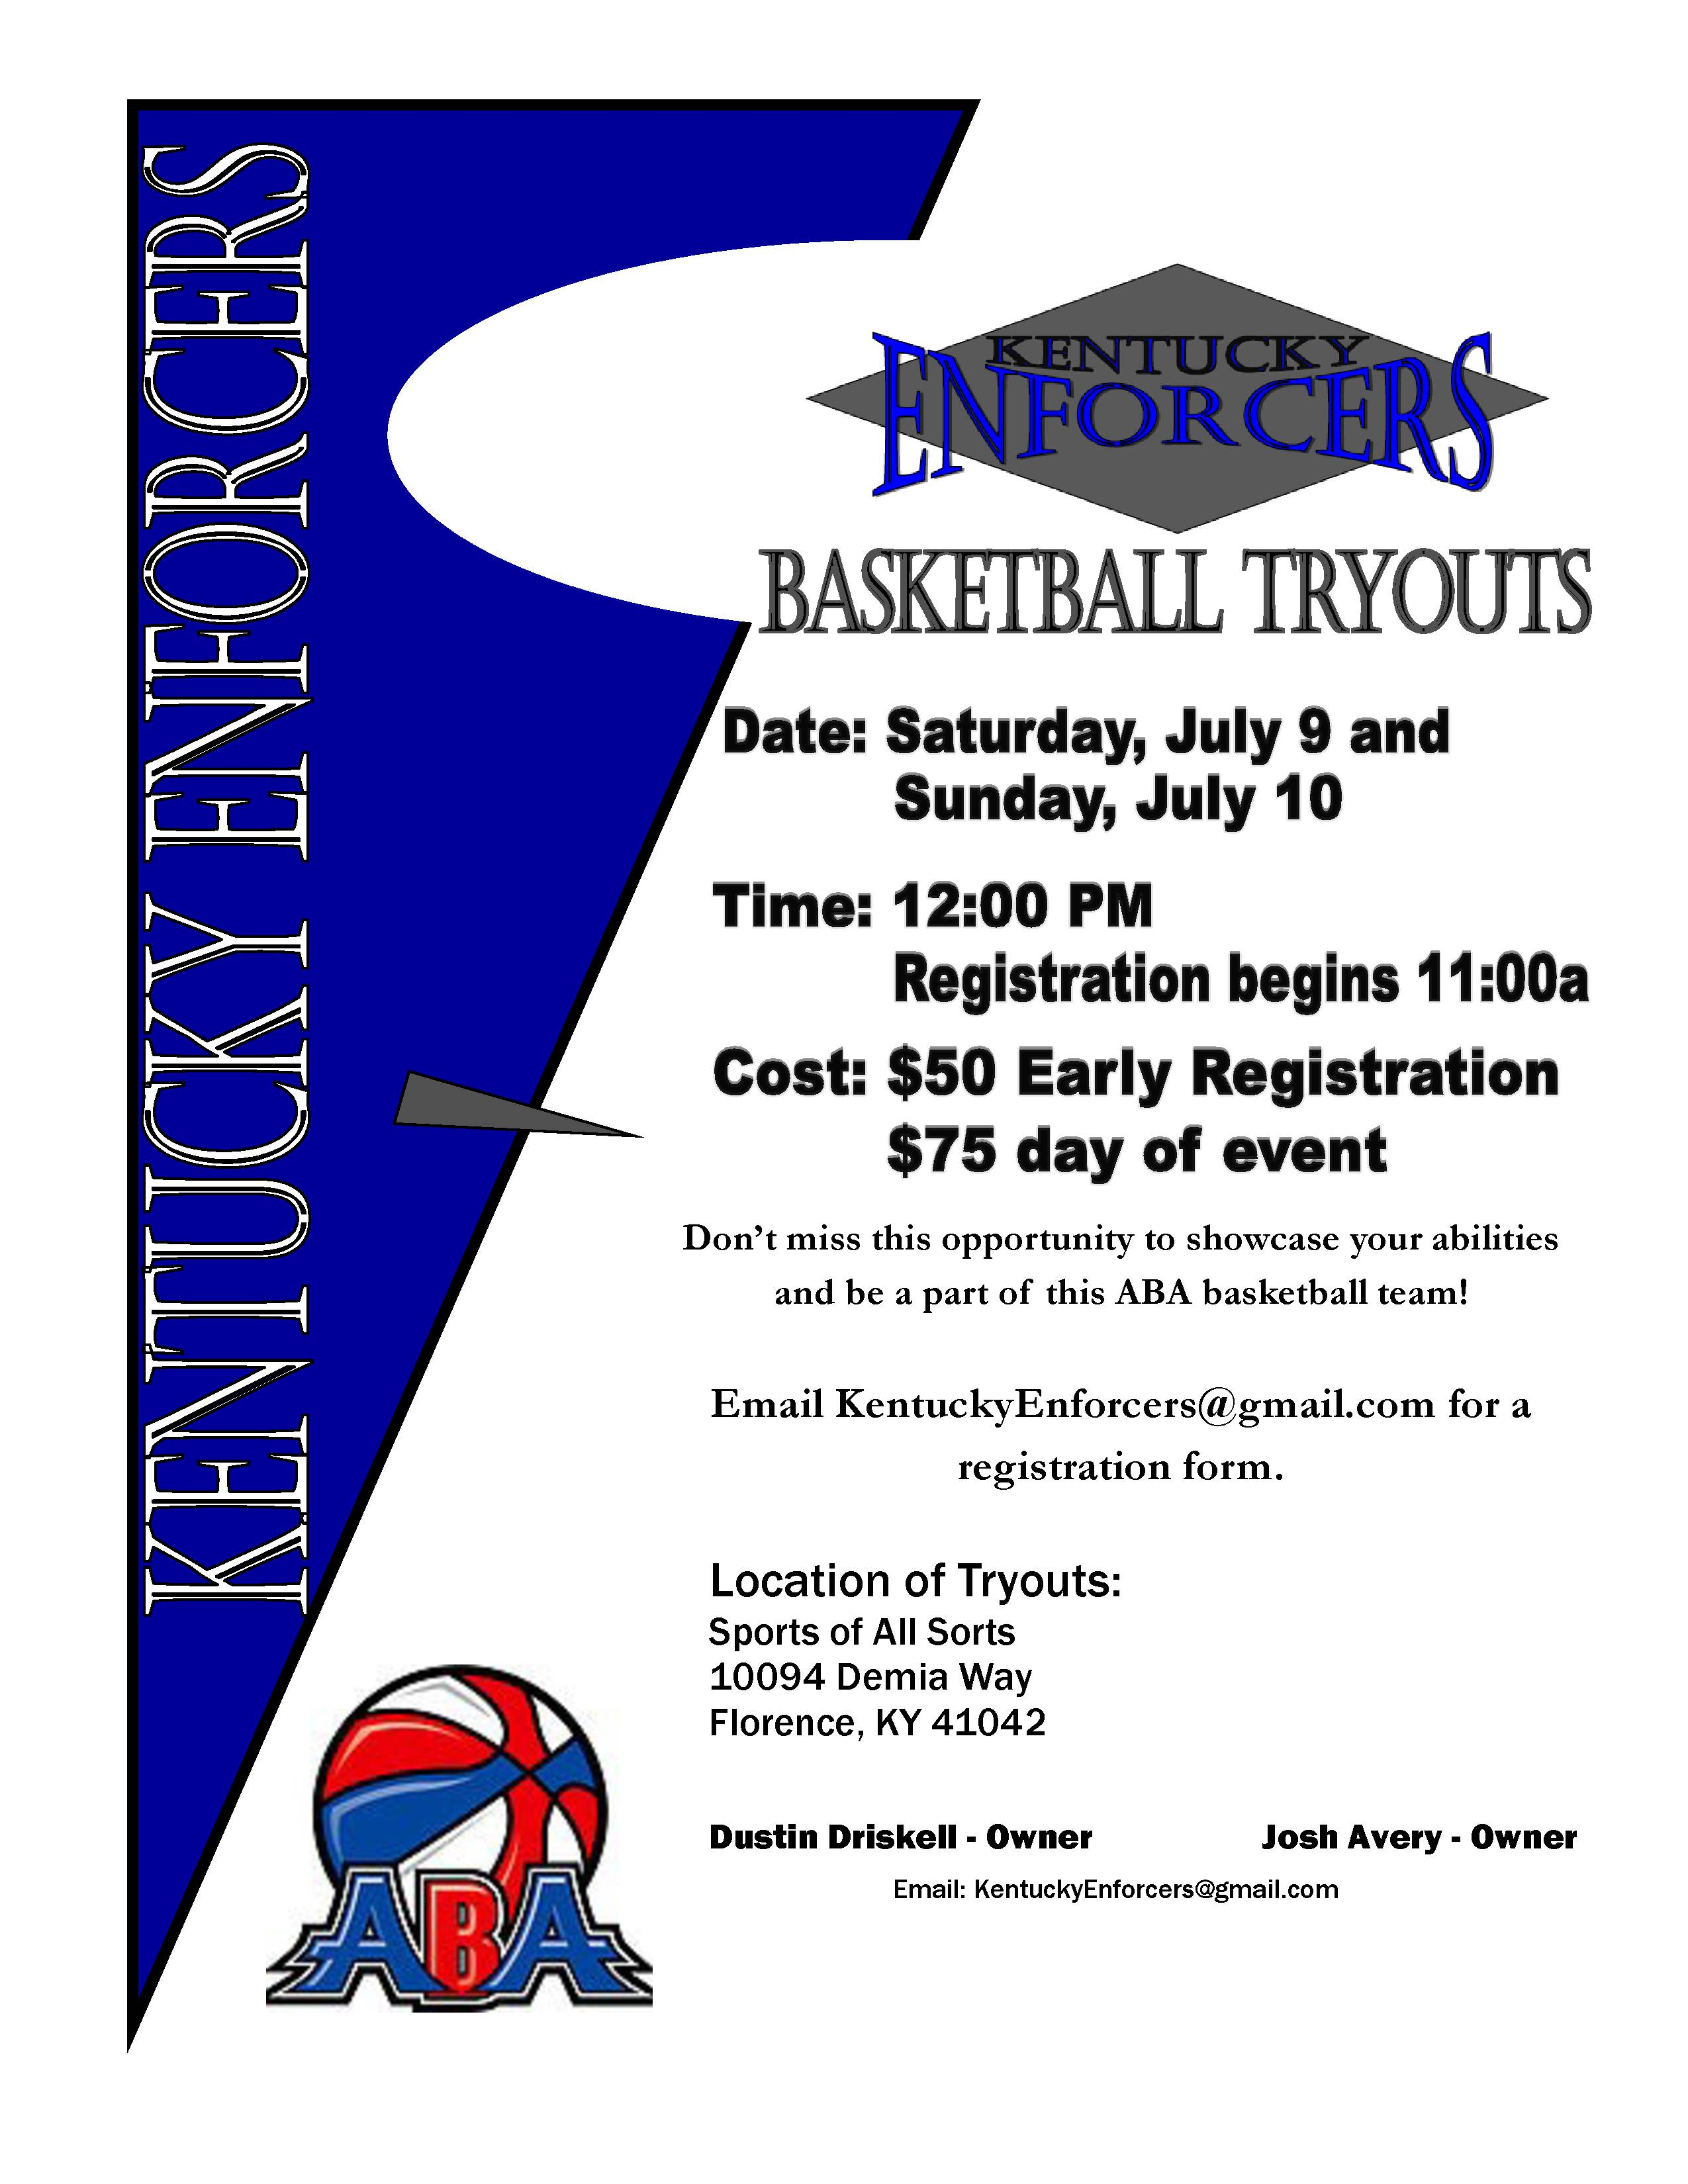 Kentucky_Enforcer_Tryout_Flyer